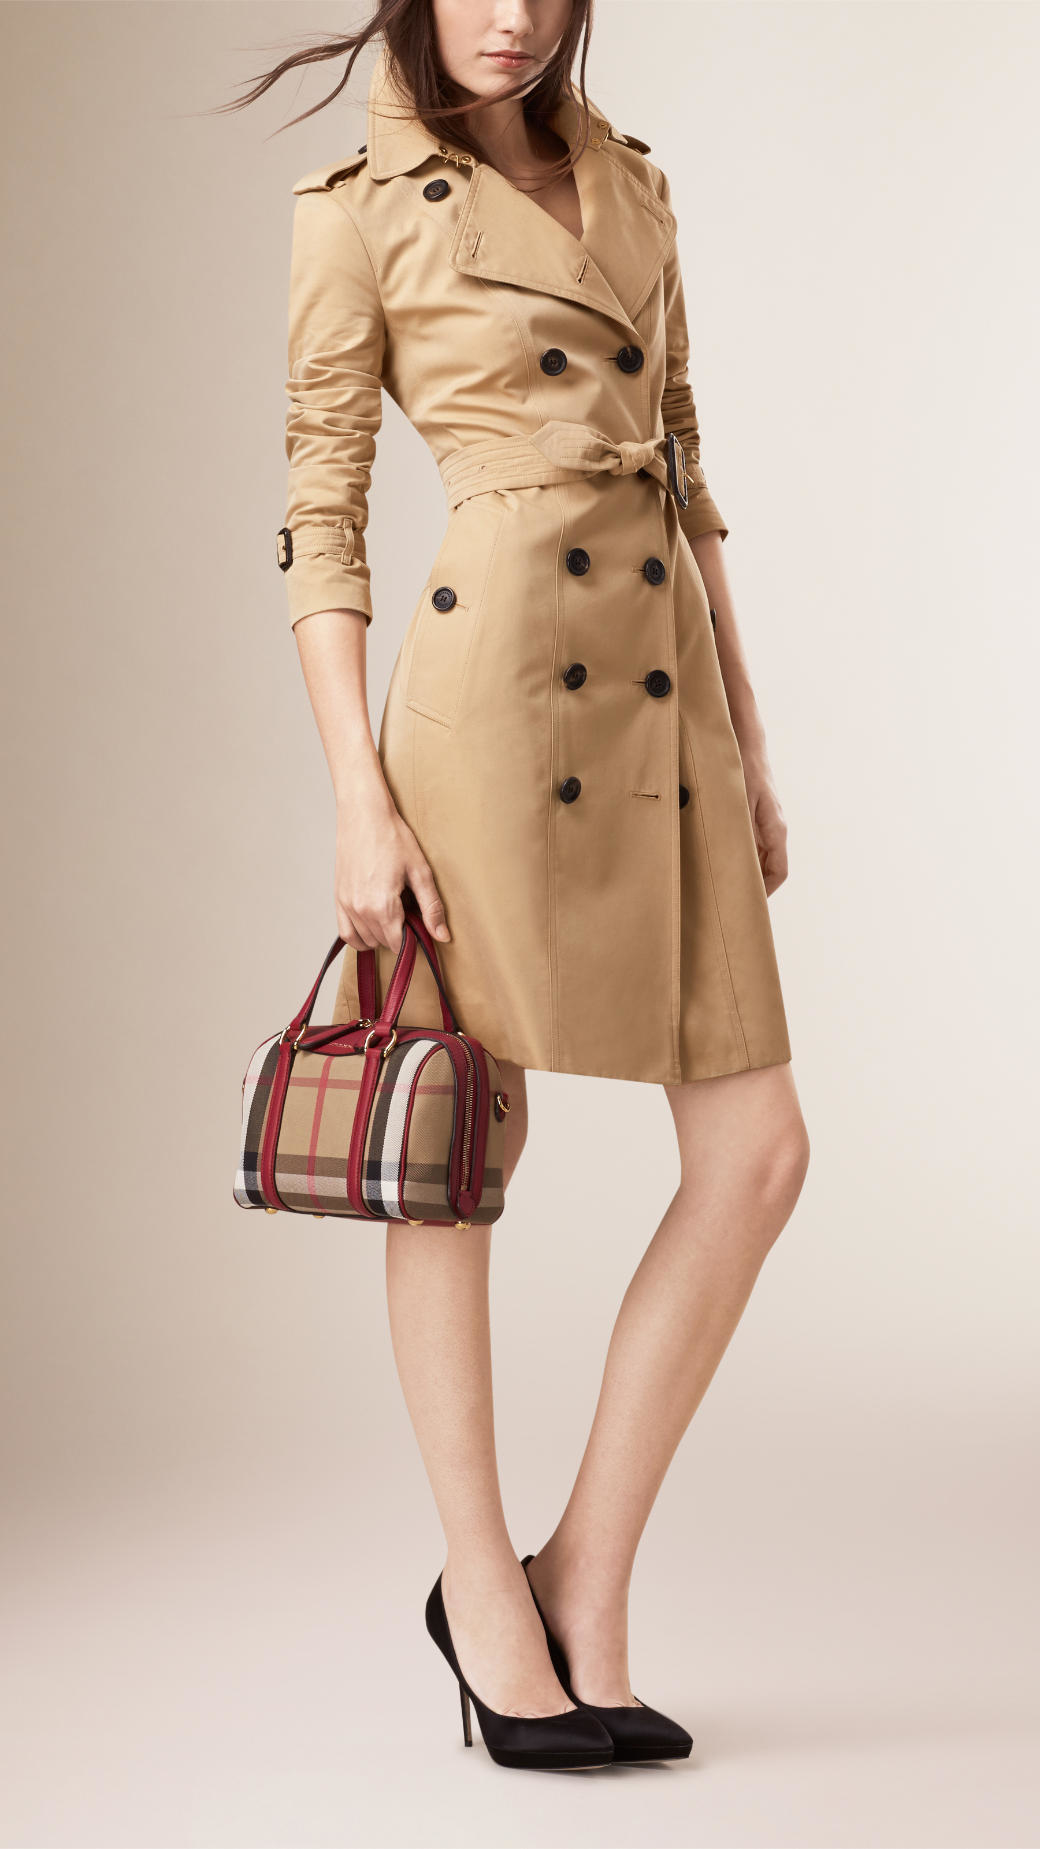 067eff1b86f3 Lyst - Burberry The Small Alchester House Check And Leather Bag in Red